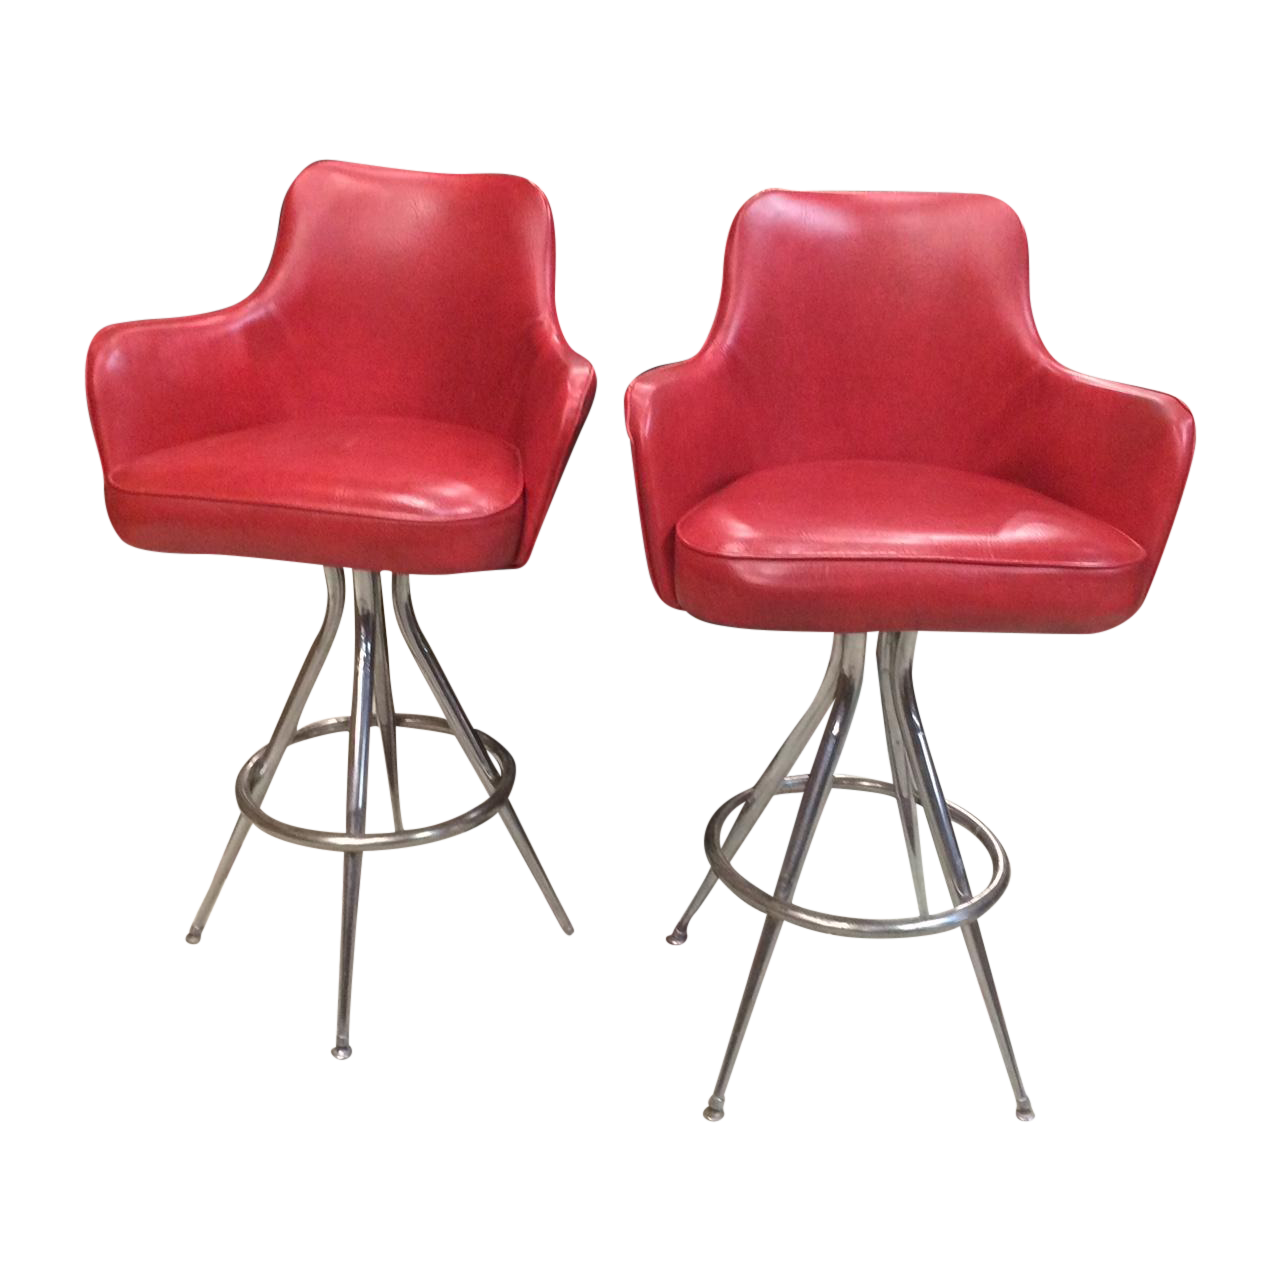 Vintage 1970s Red Bar Stools Pair Chairish